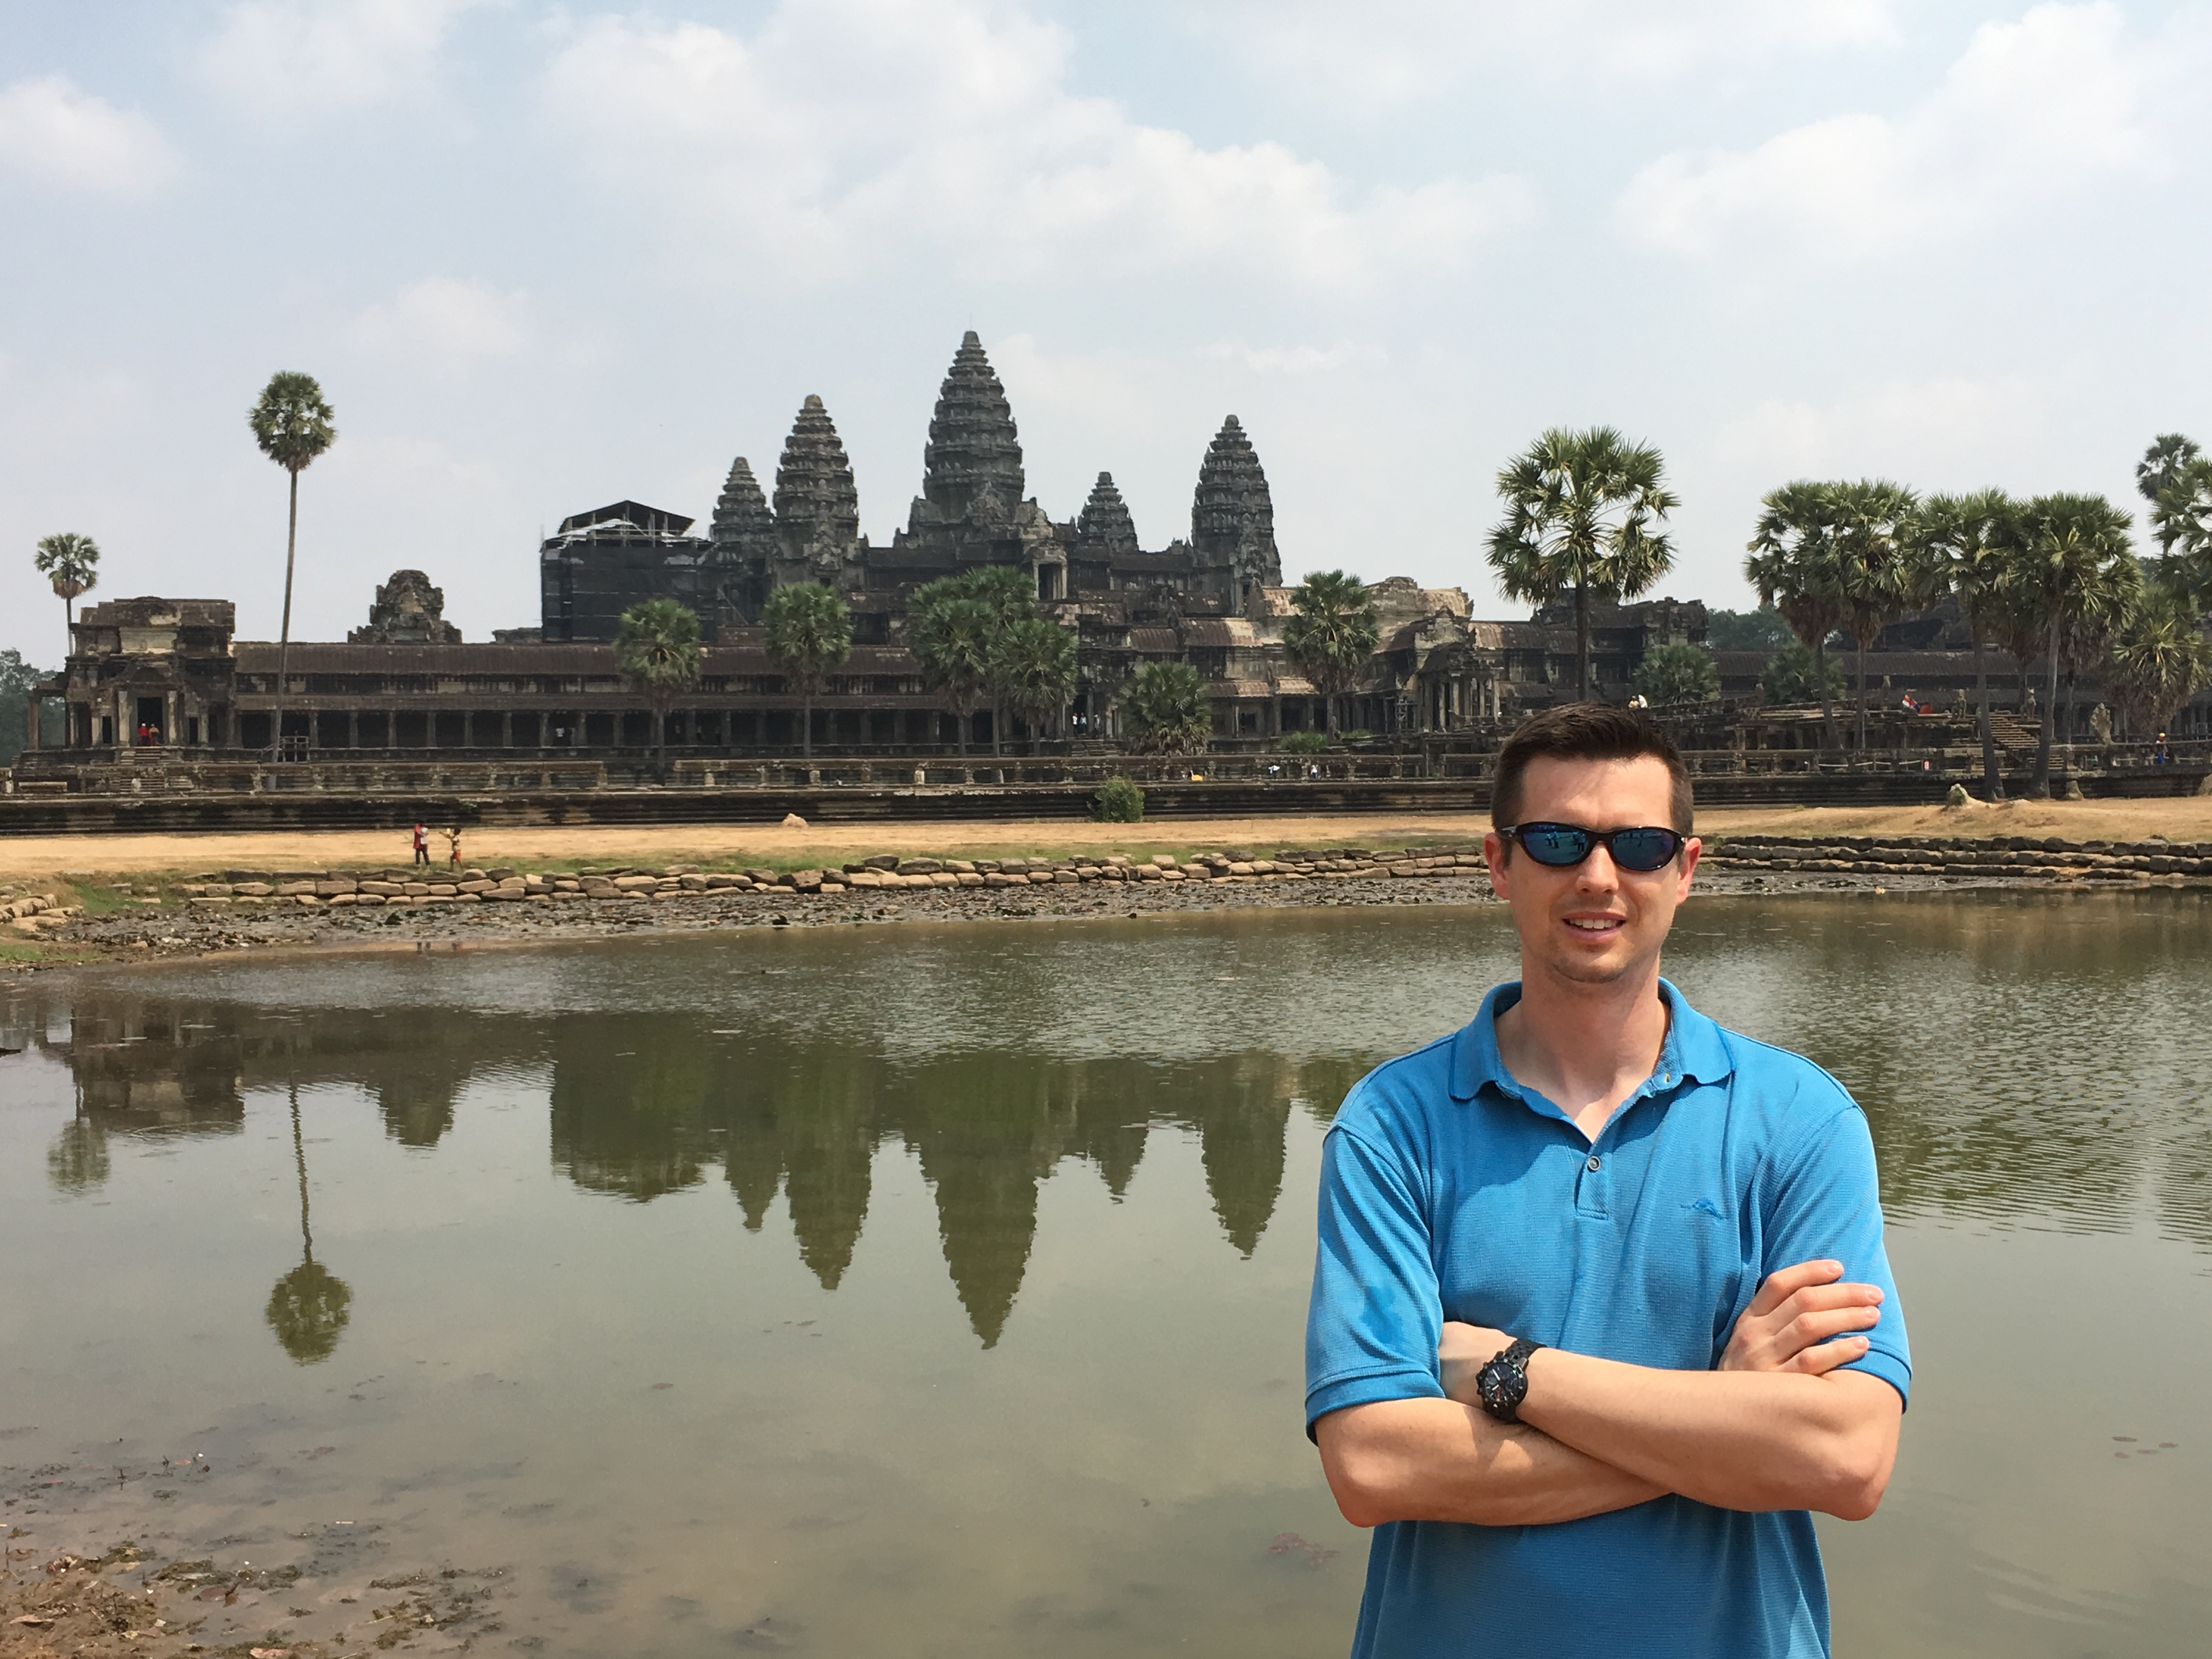 An amazing tour of the Angkor Temples!